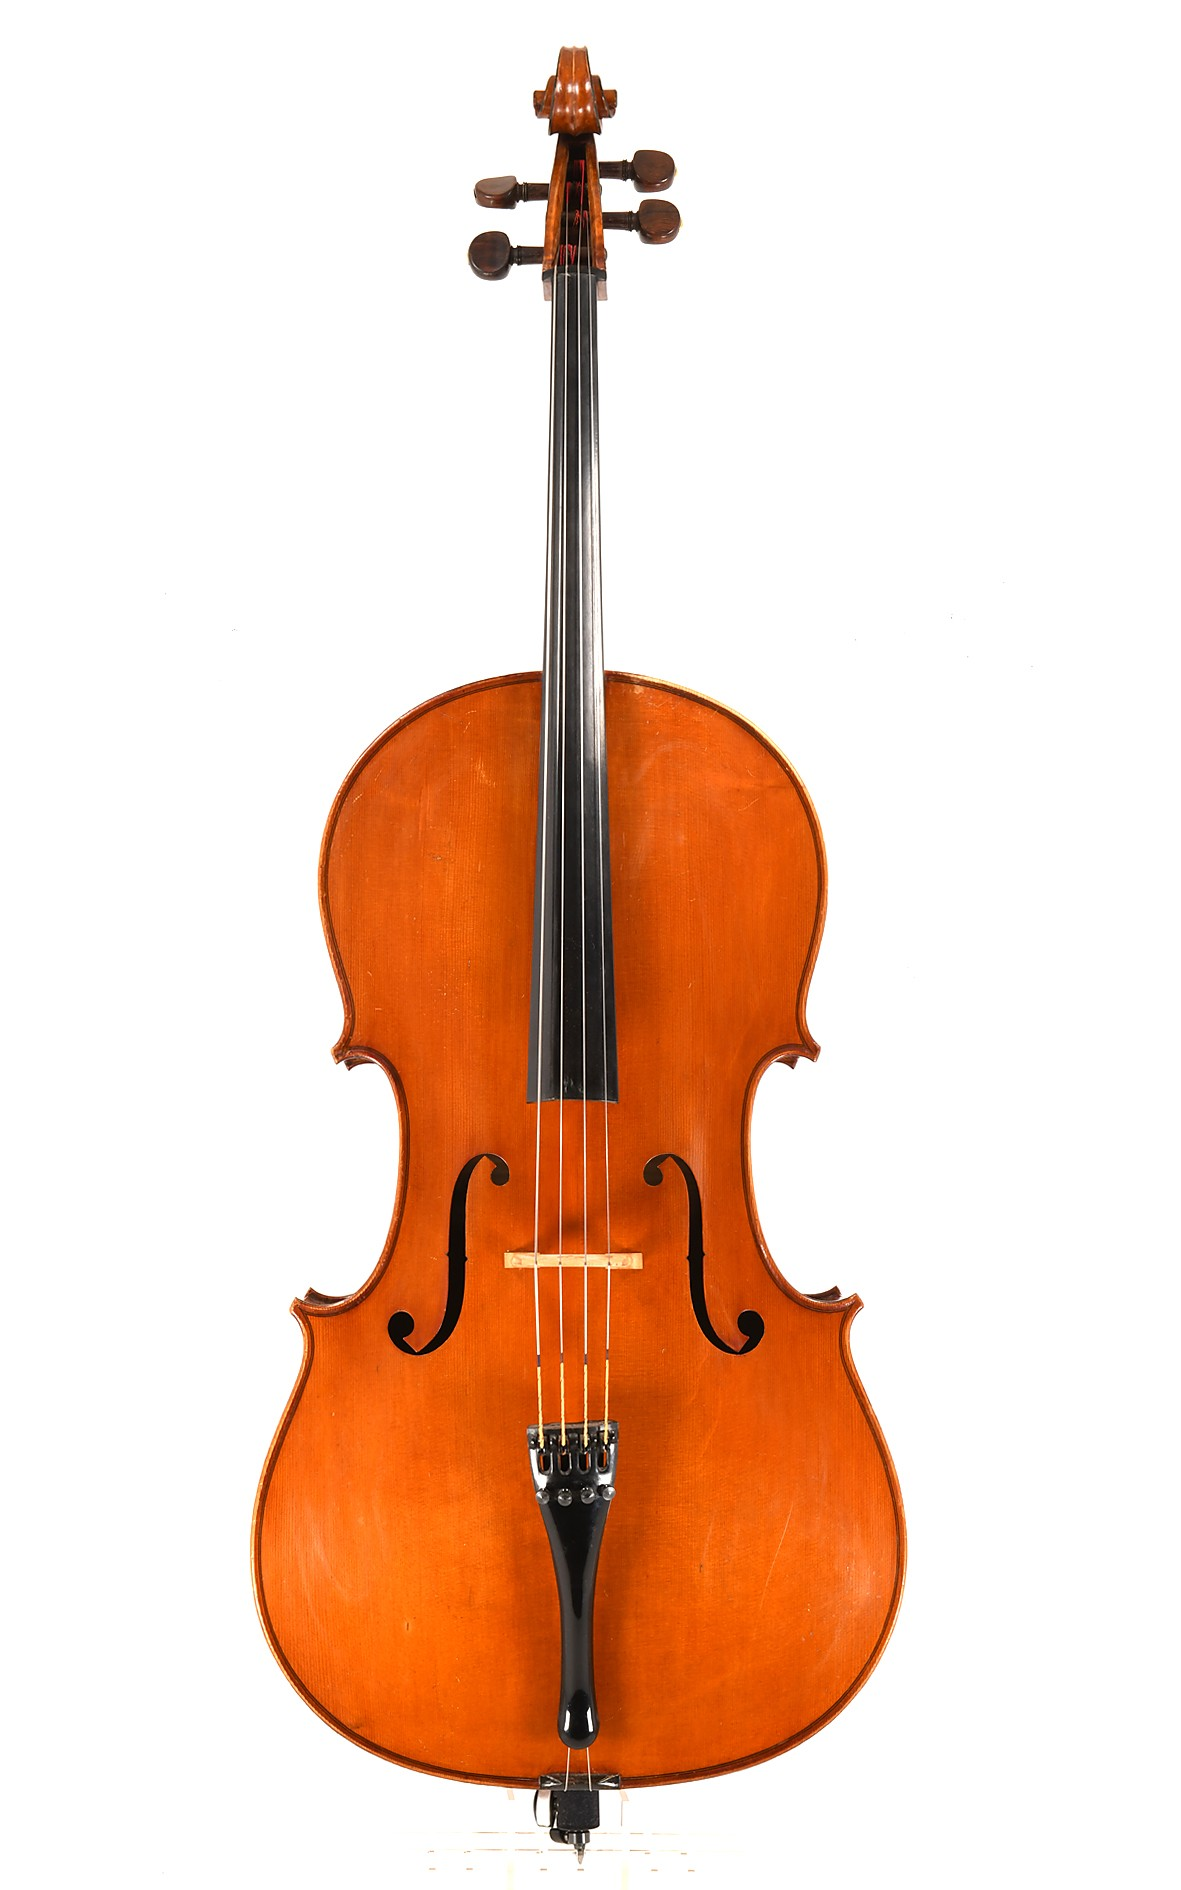 Fine cello by Collin-Mézin fils, Mirecourt